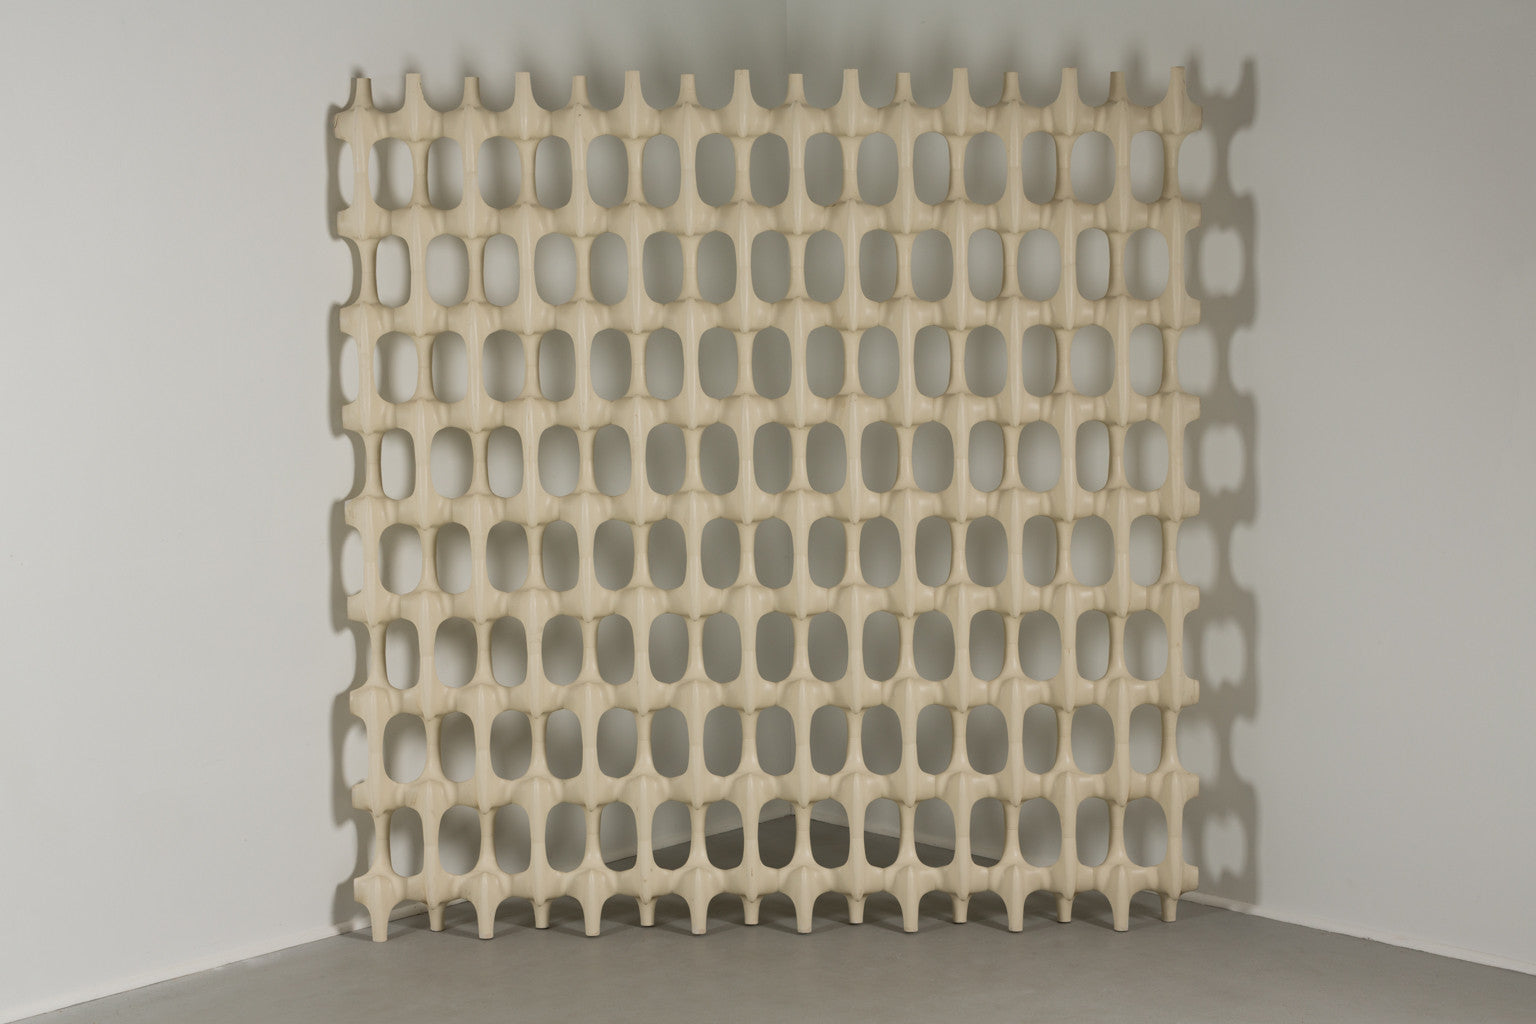 Large Richard Harvey Contemporary Sculpta-Grille Screen, 1960s